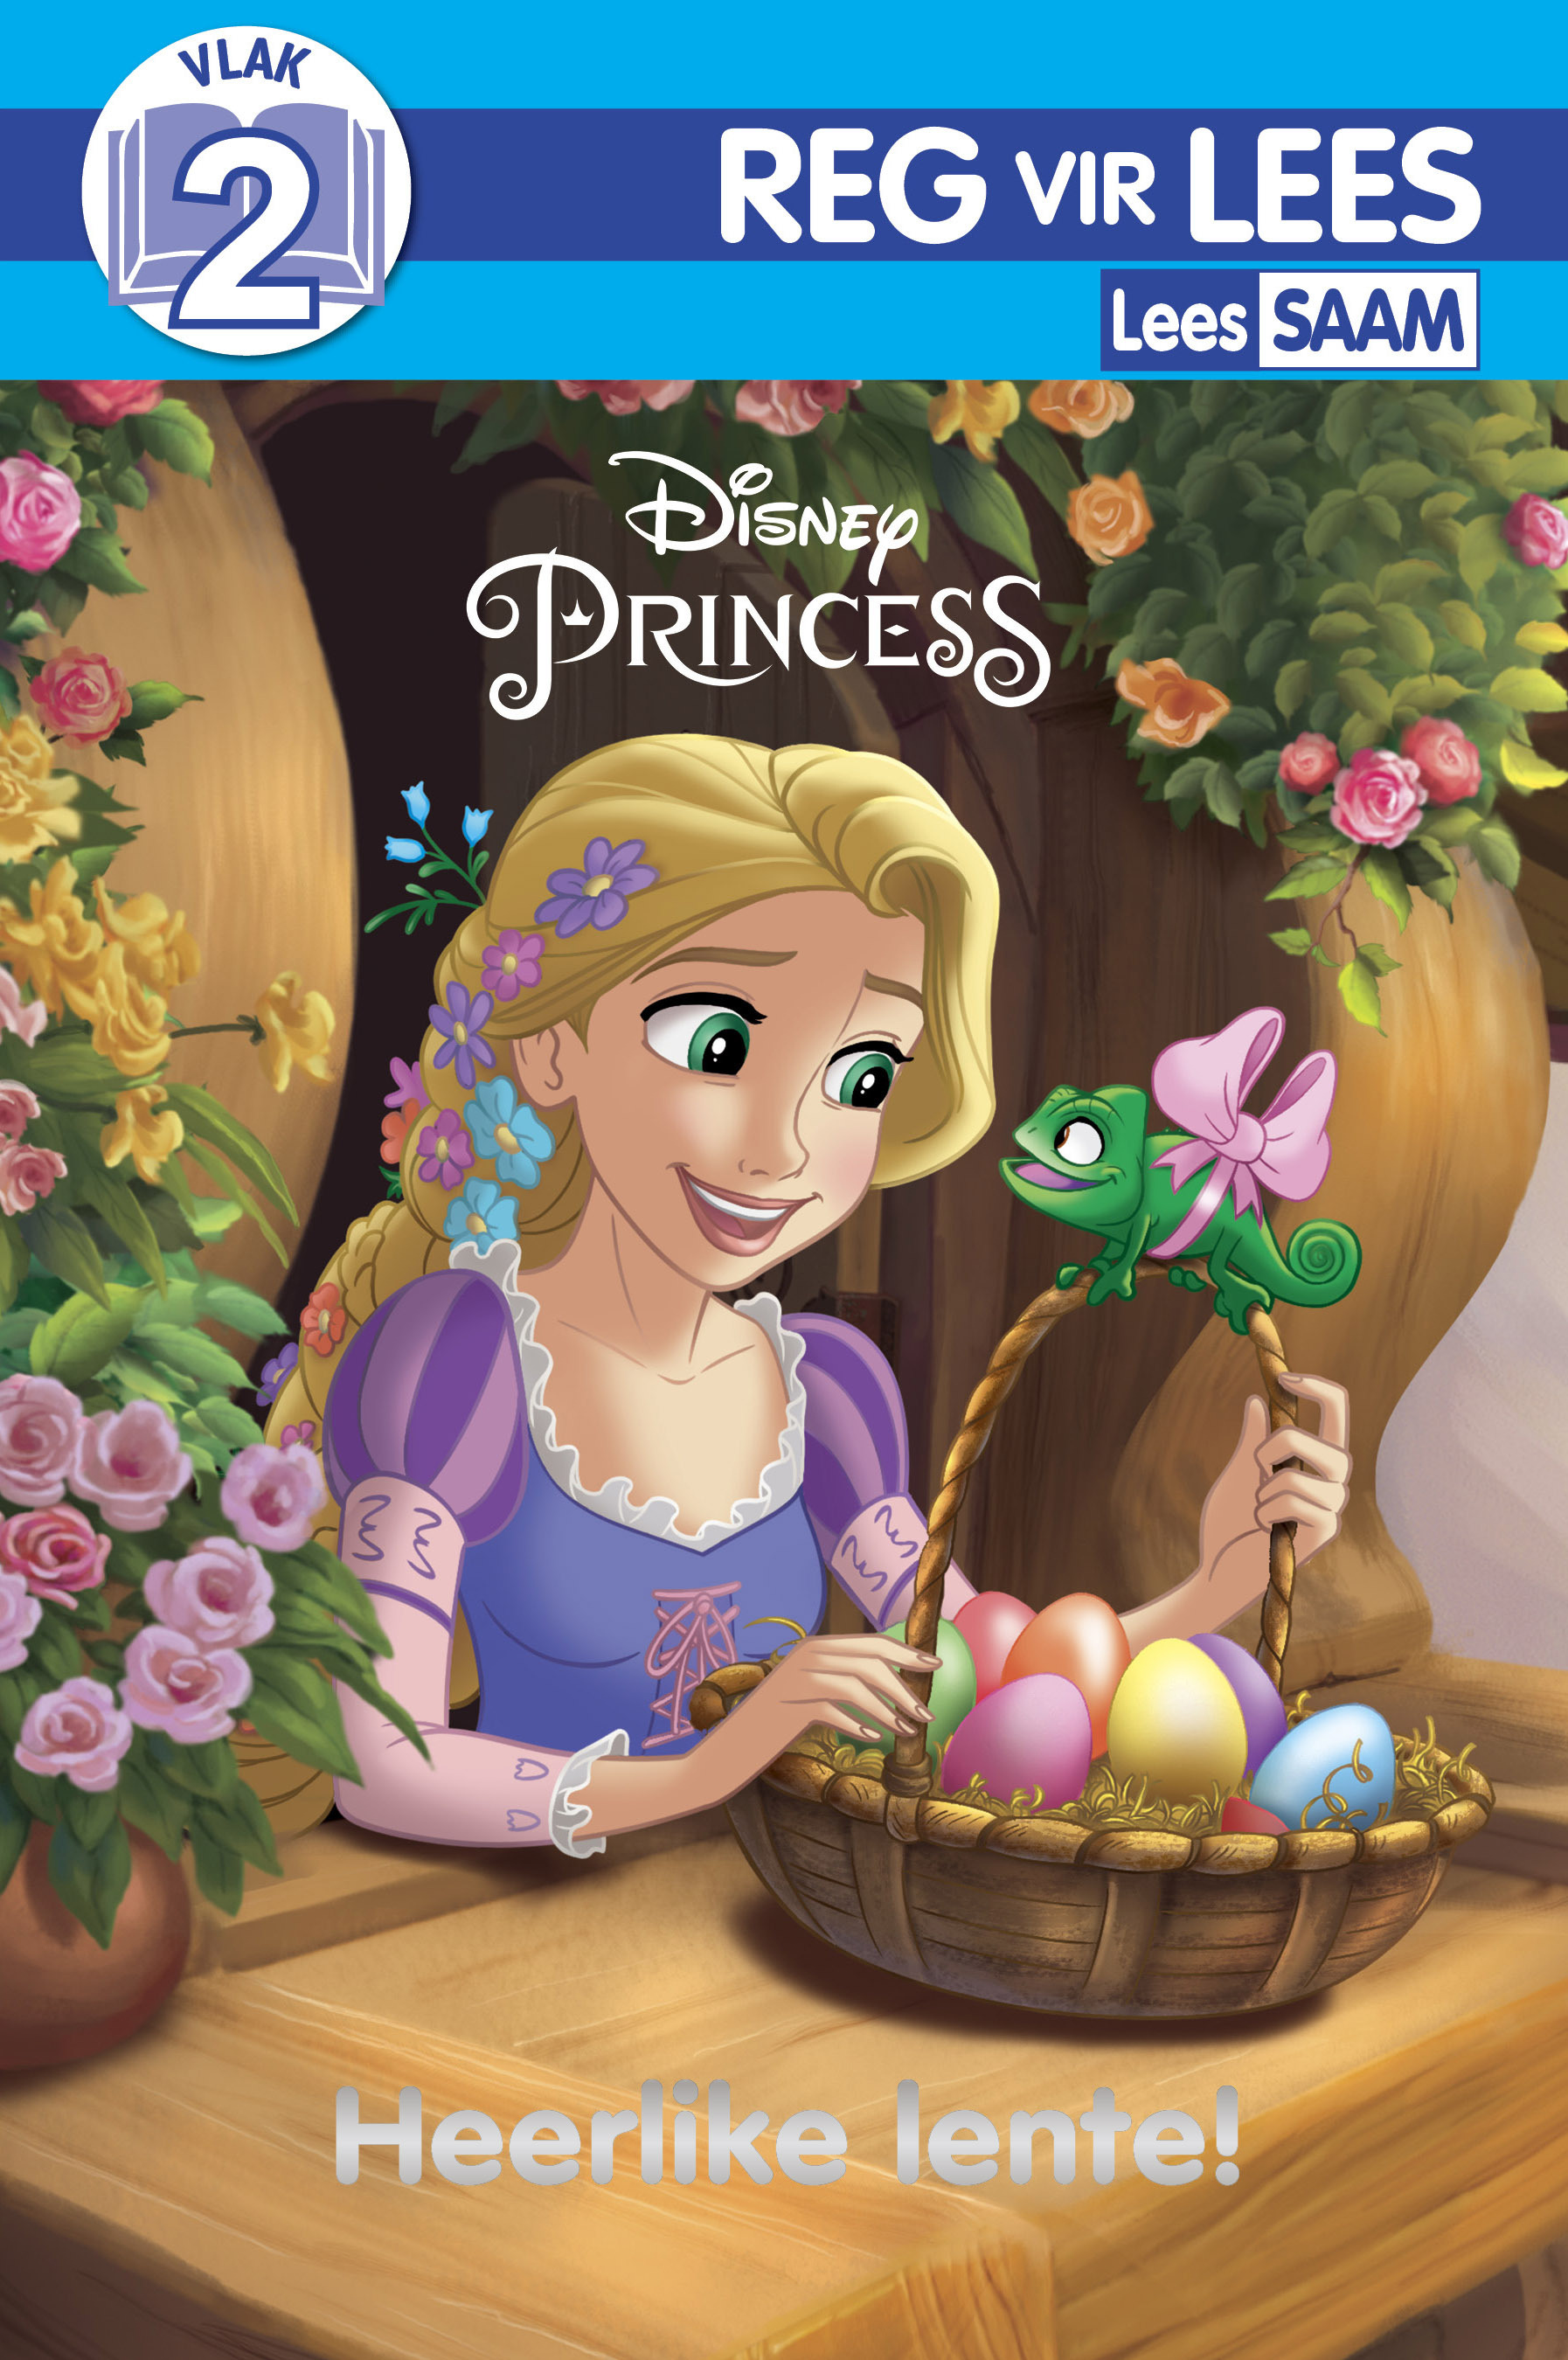 Disney Princess - RVL Vlak 2